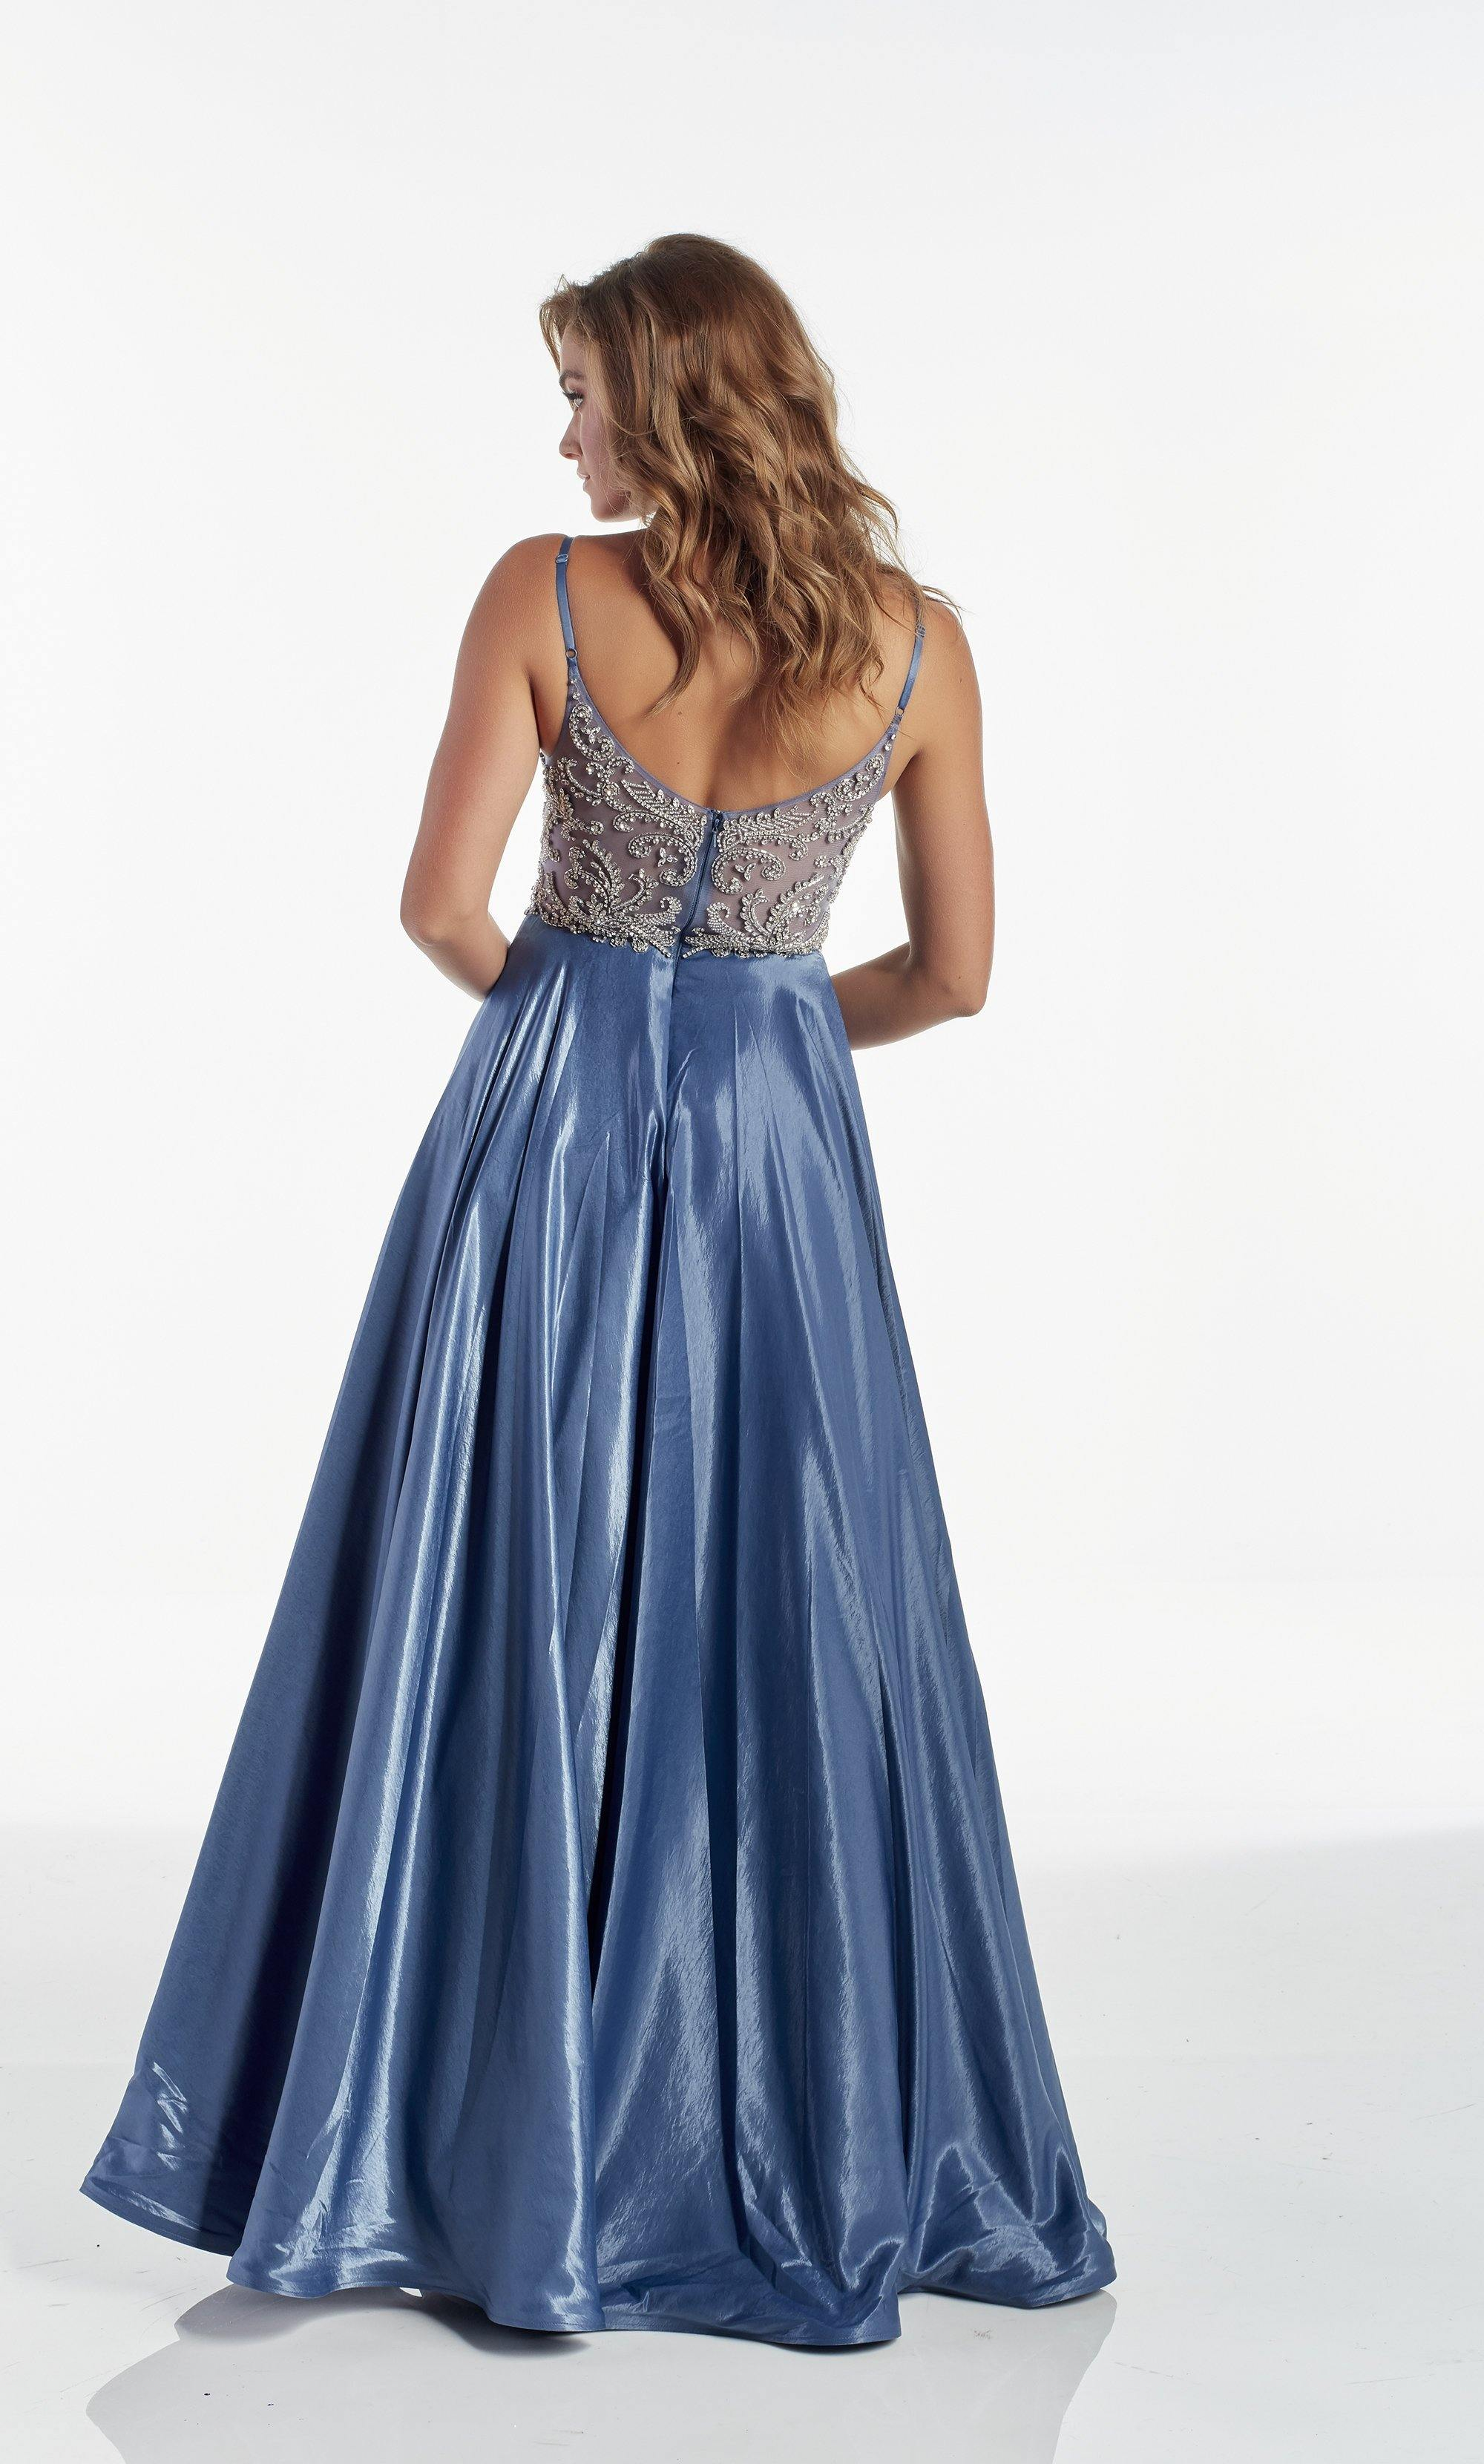 Dark French Blue flowy prom dress with a V neckline and embellished bodice